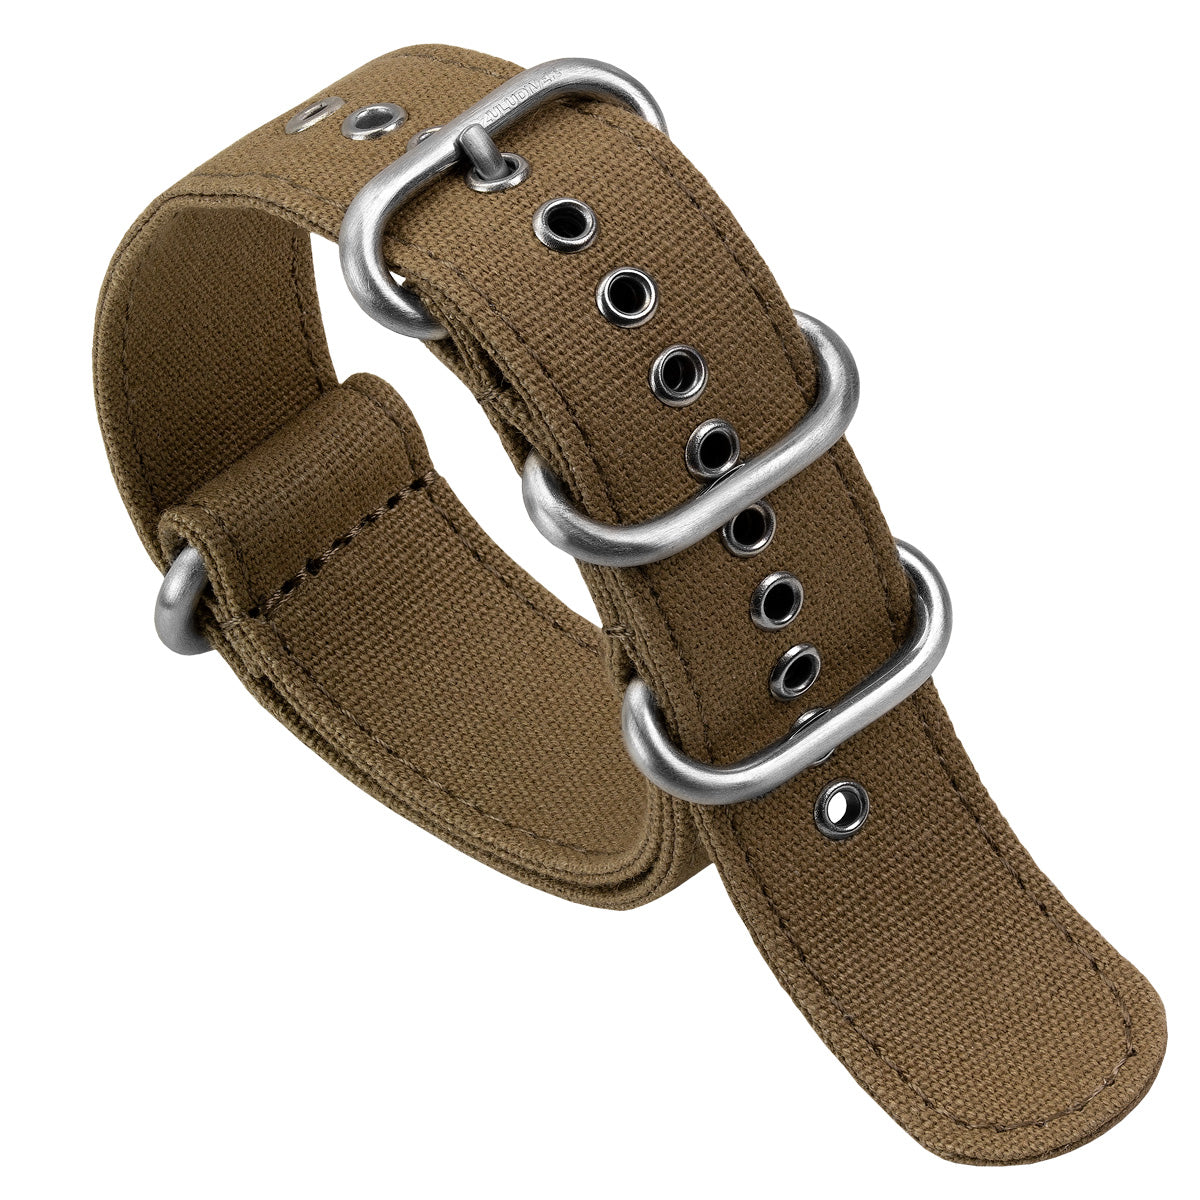 ZULUDIVER Vintage Canvas ZULU Watch Strap